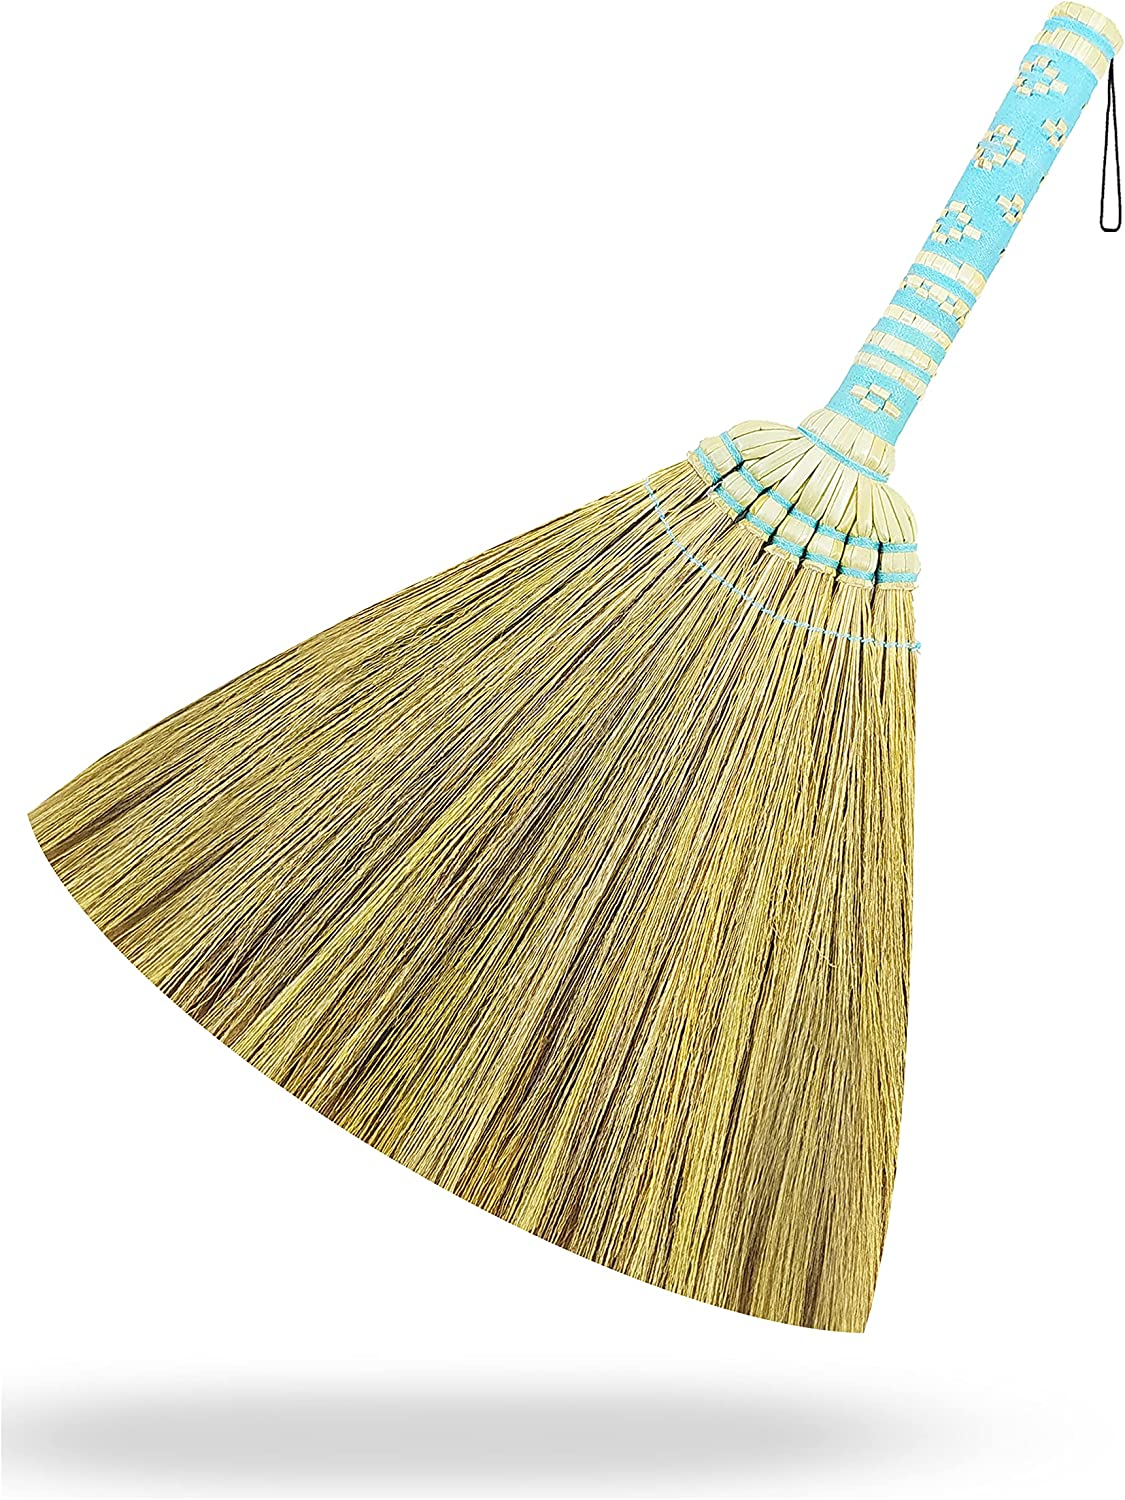 Small Sweeping Broom L 17.5 Inch Natural Grass B with Shipping included Limited Special Price Mini